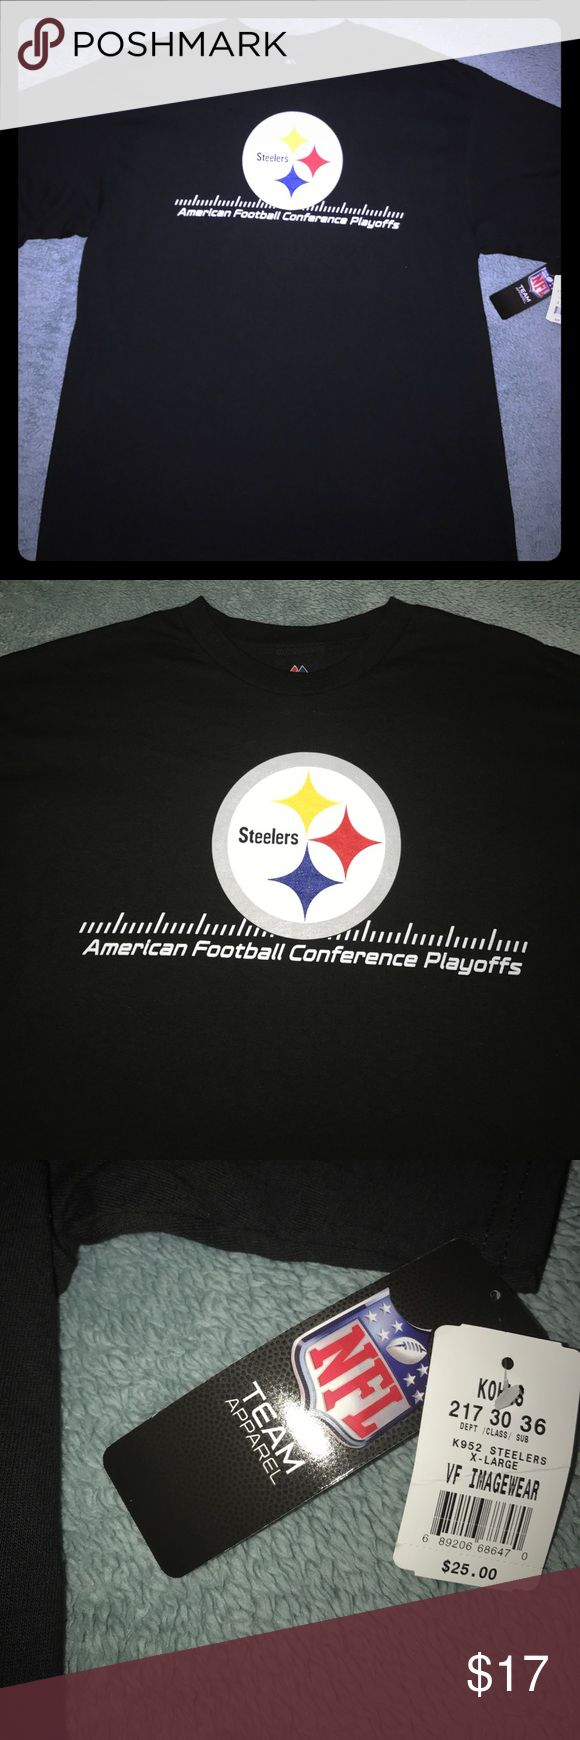 🏈 NFL Pittsburgh Steelers AFC Playoffs Men's Top For sale is a NWT, Size XL, Majestic Brand, NFL Pittsburgh Steelers AFC Playoffs Men's T-Shirt. Perfect for the Steelers fan in your family! Majestic Shirts Tees - Short Sleeve